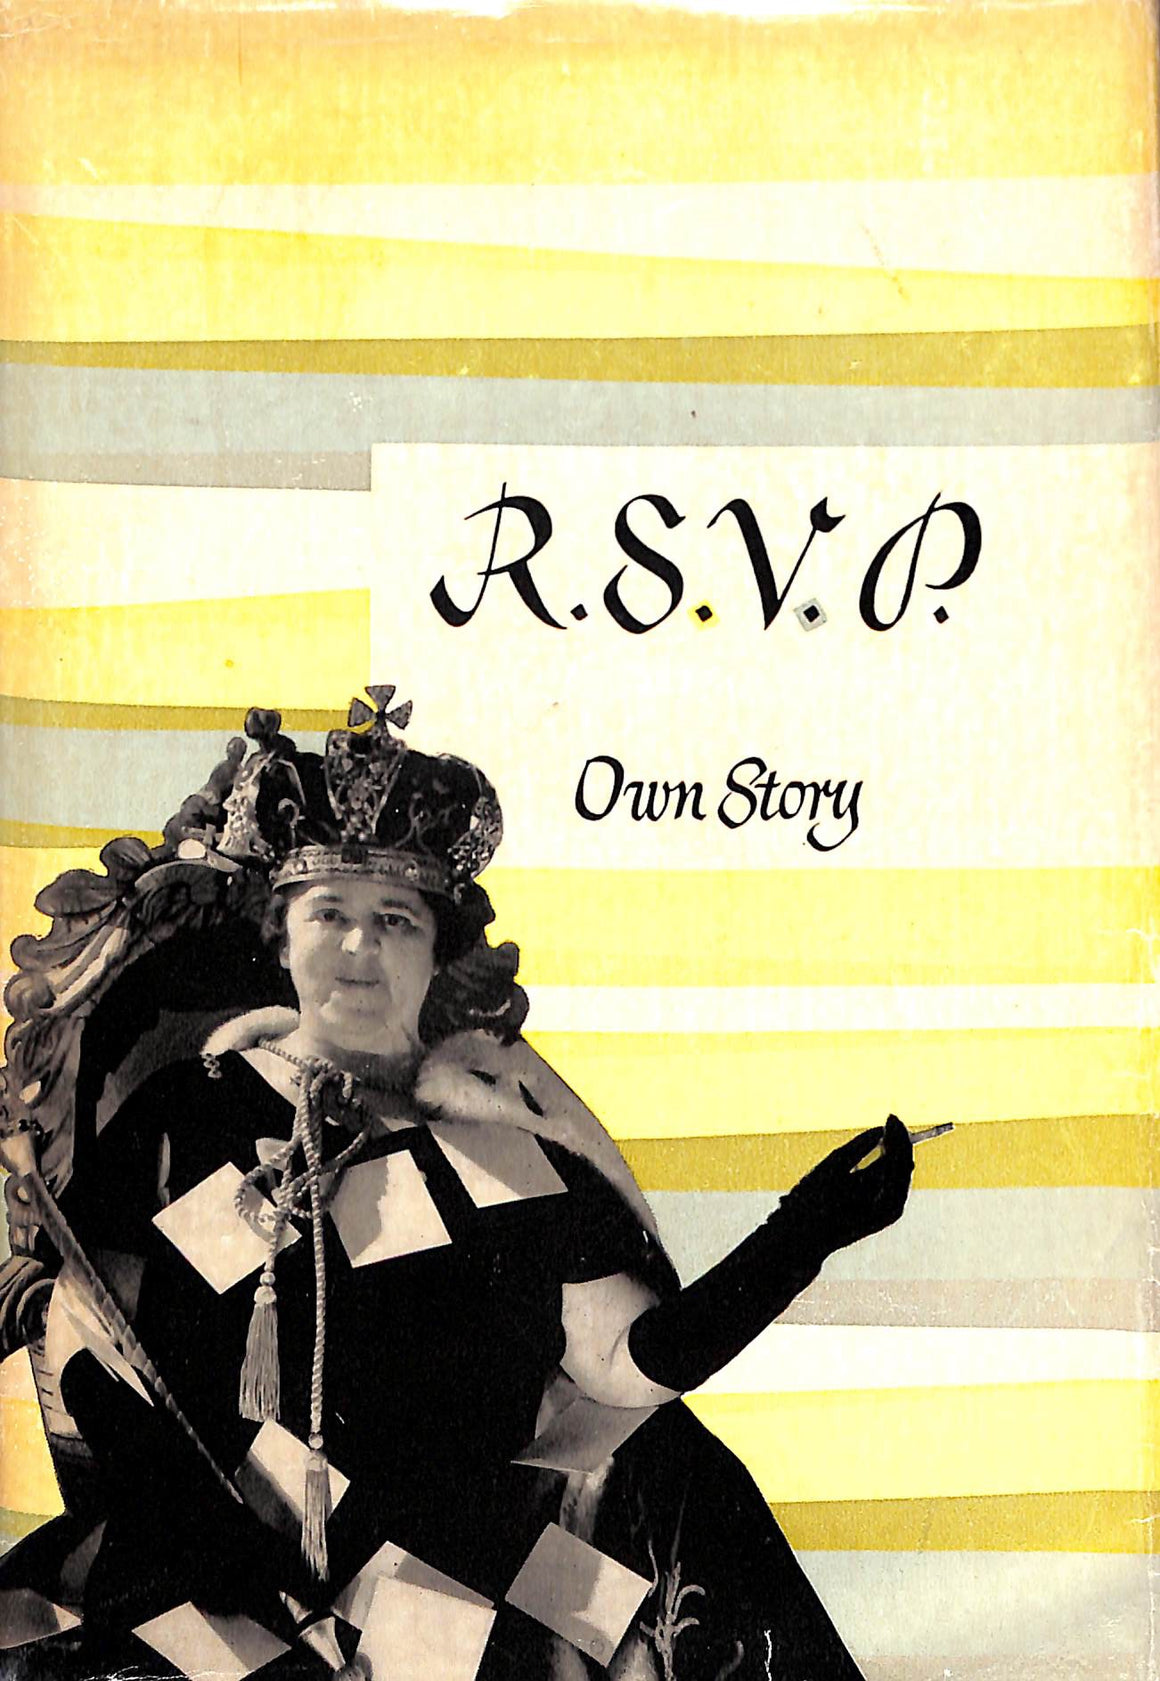 R.S.V.P. Own Story by Elsa Maxwell